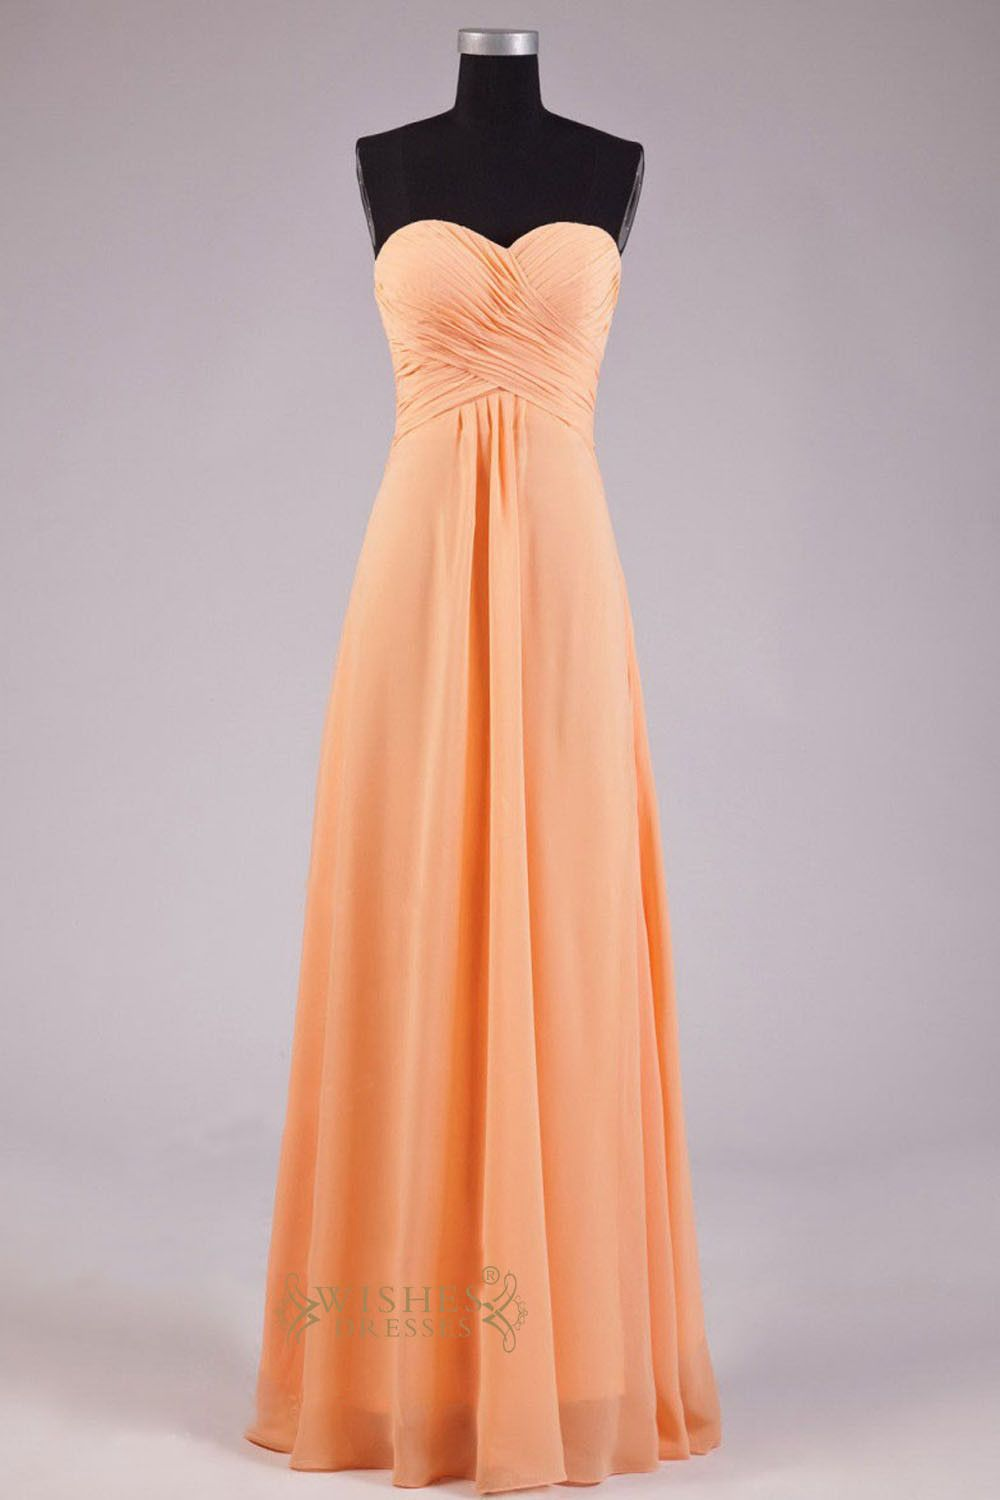 95b995e96e0a A line Sweetheart Orange Chiffon Floor Length Bridesmaid Dress AM252